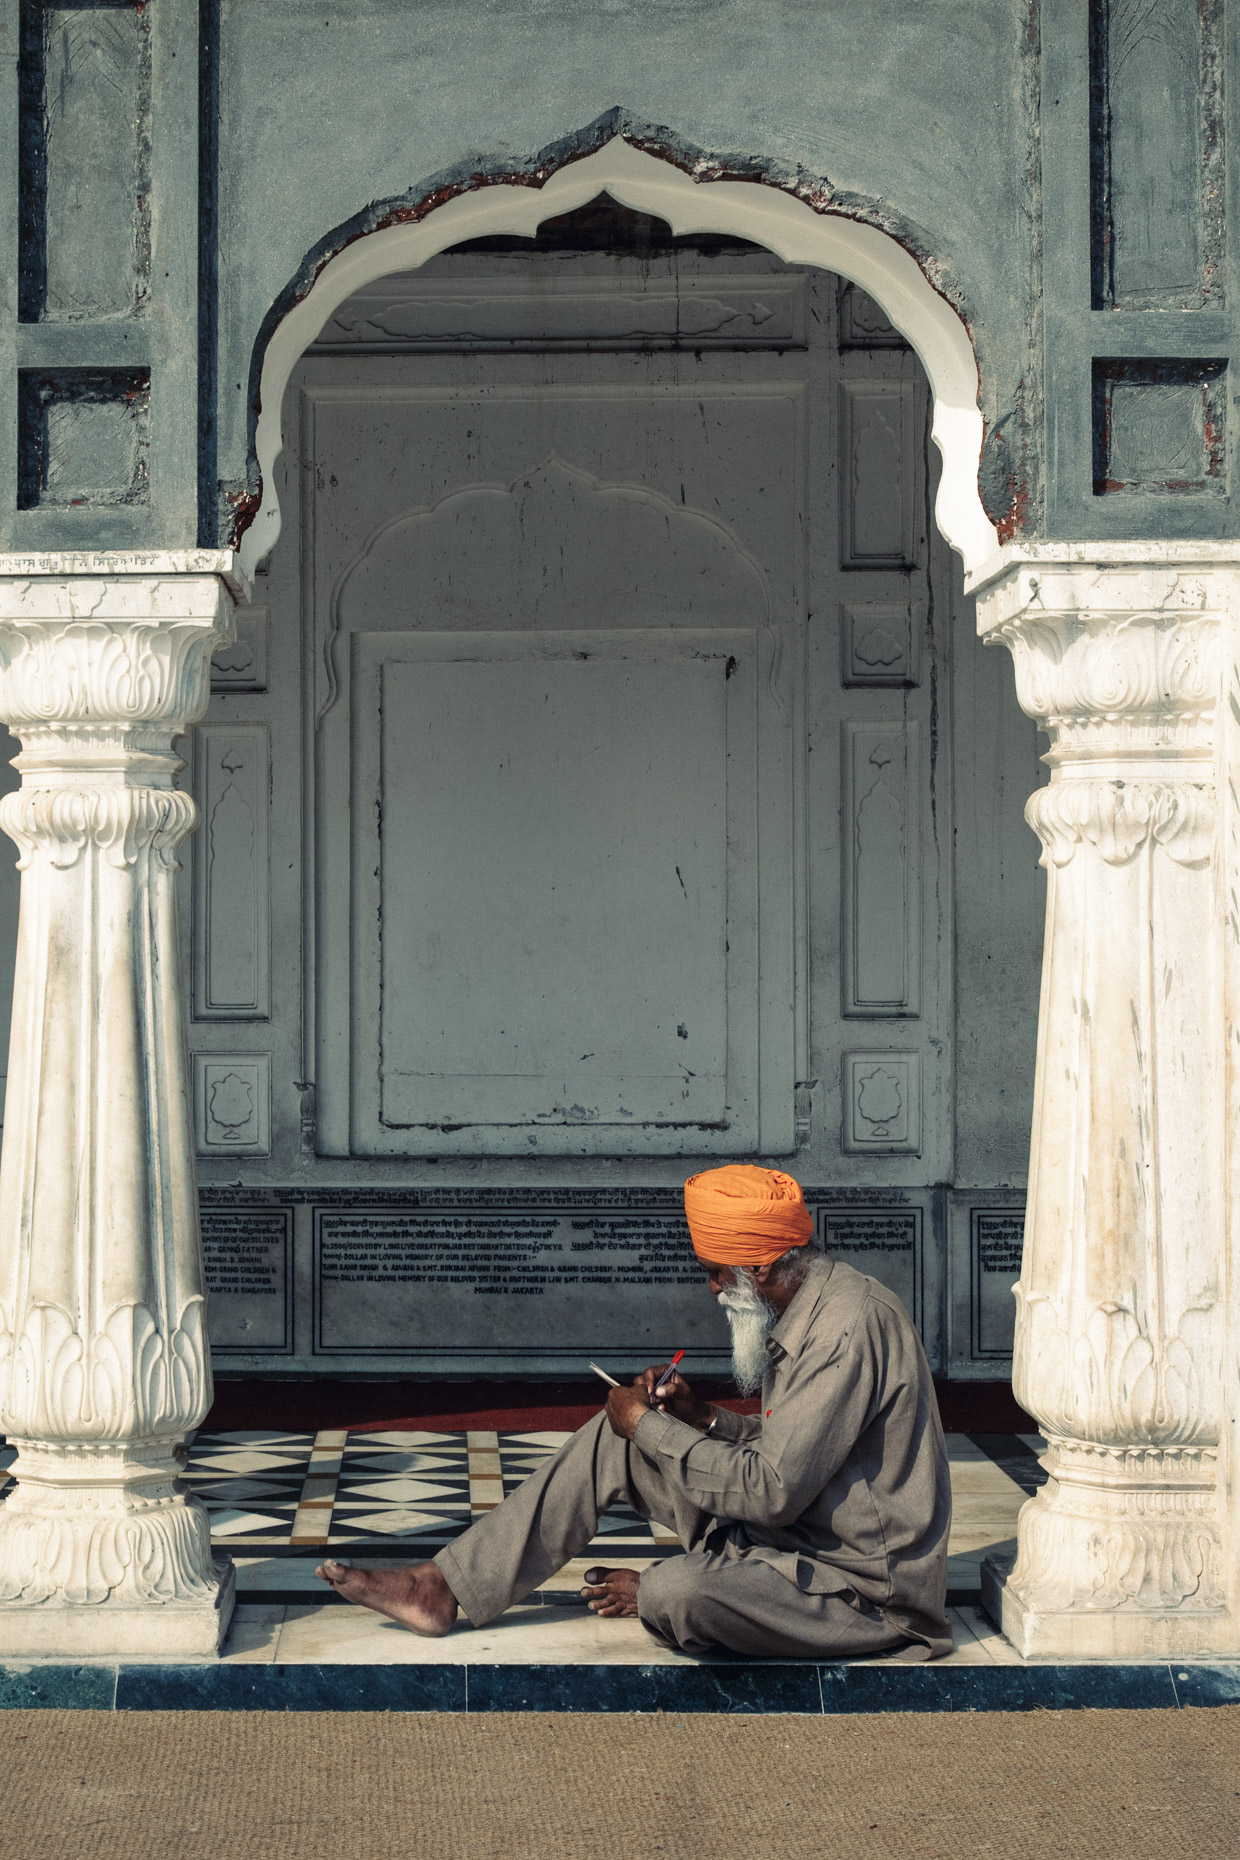 Sikh man in orange turbon sitting in doorway at golden temple in Amritsar, Punjab,  India